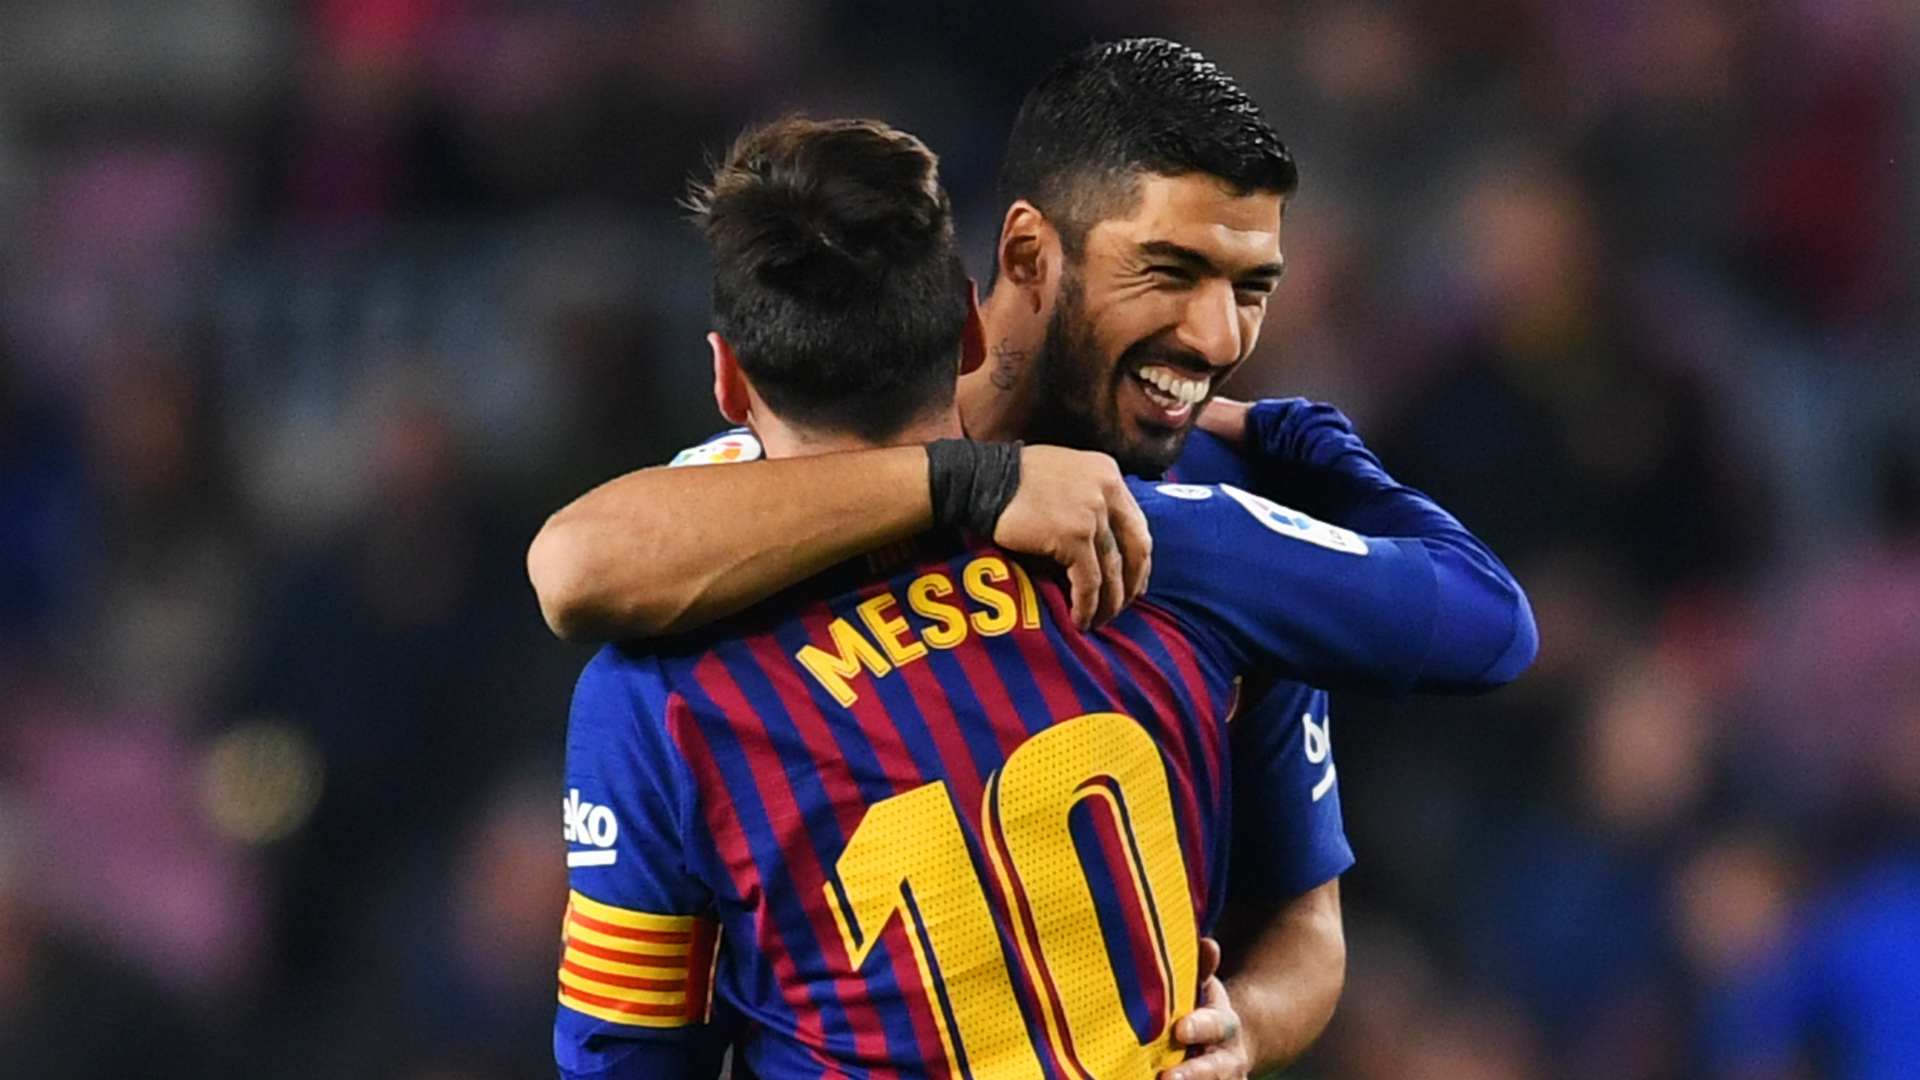 Messi proves he is the best every day, says Barcelona team-mate Suarez